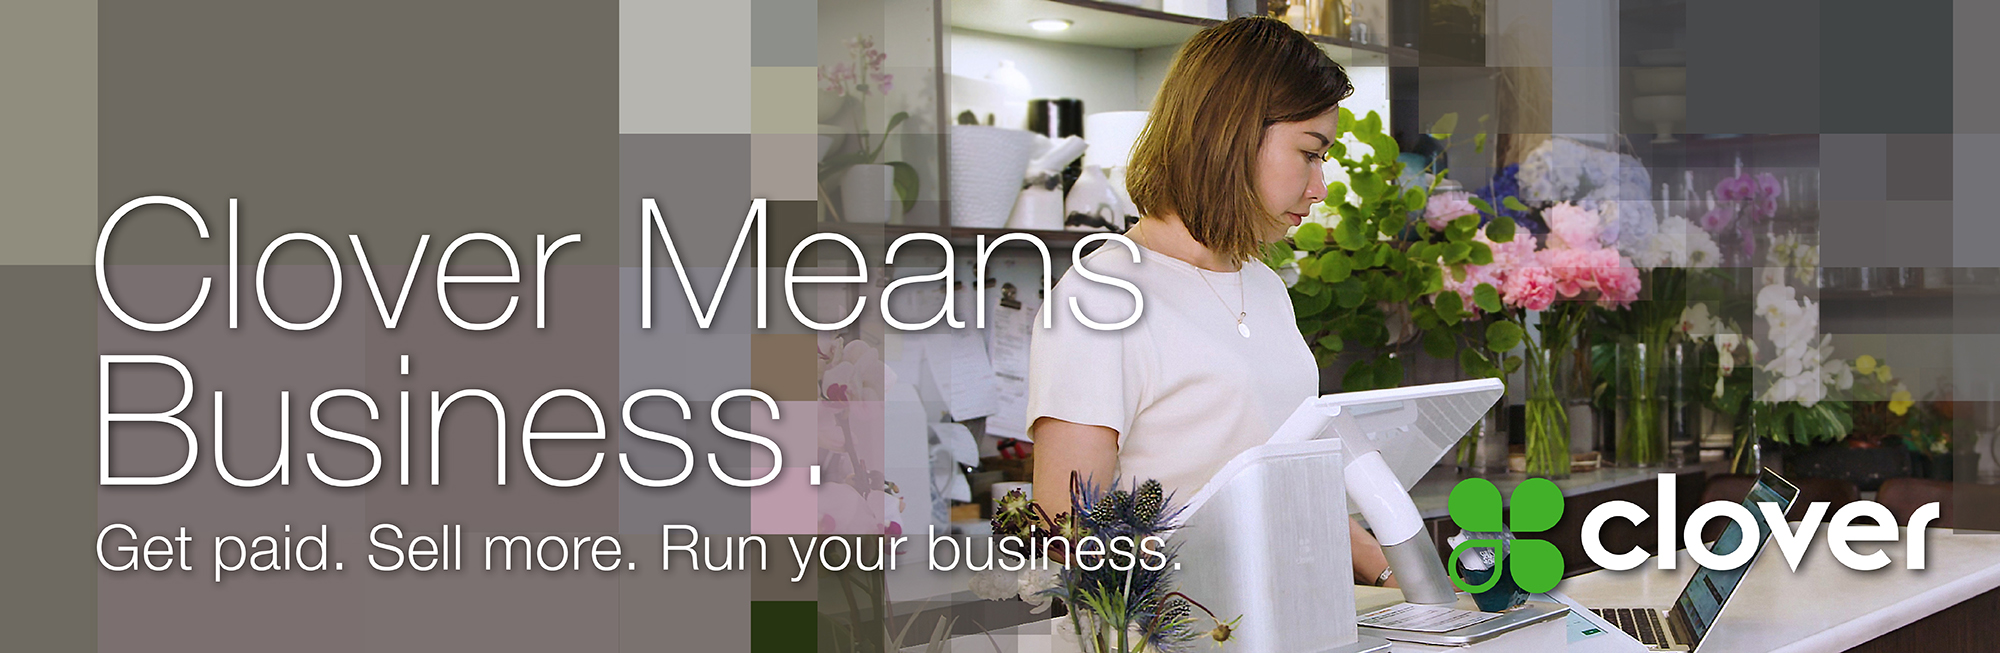 Clover Means Business. Get Paid. Sell More. Run your business with a Clover point of sale system.